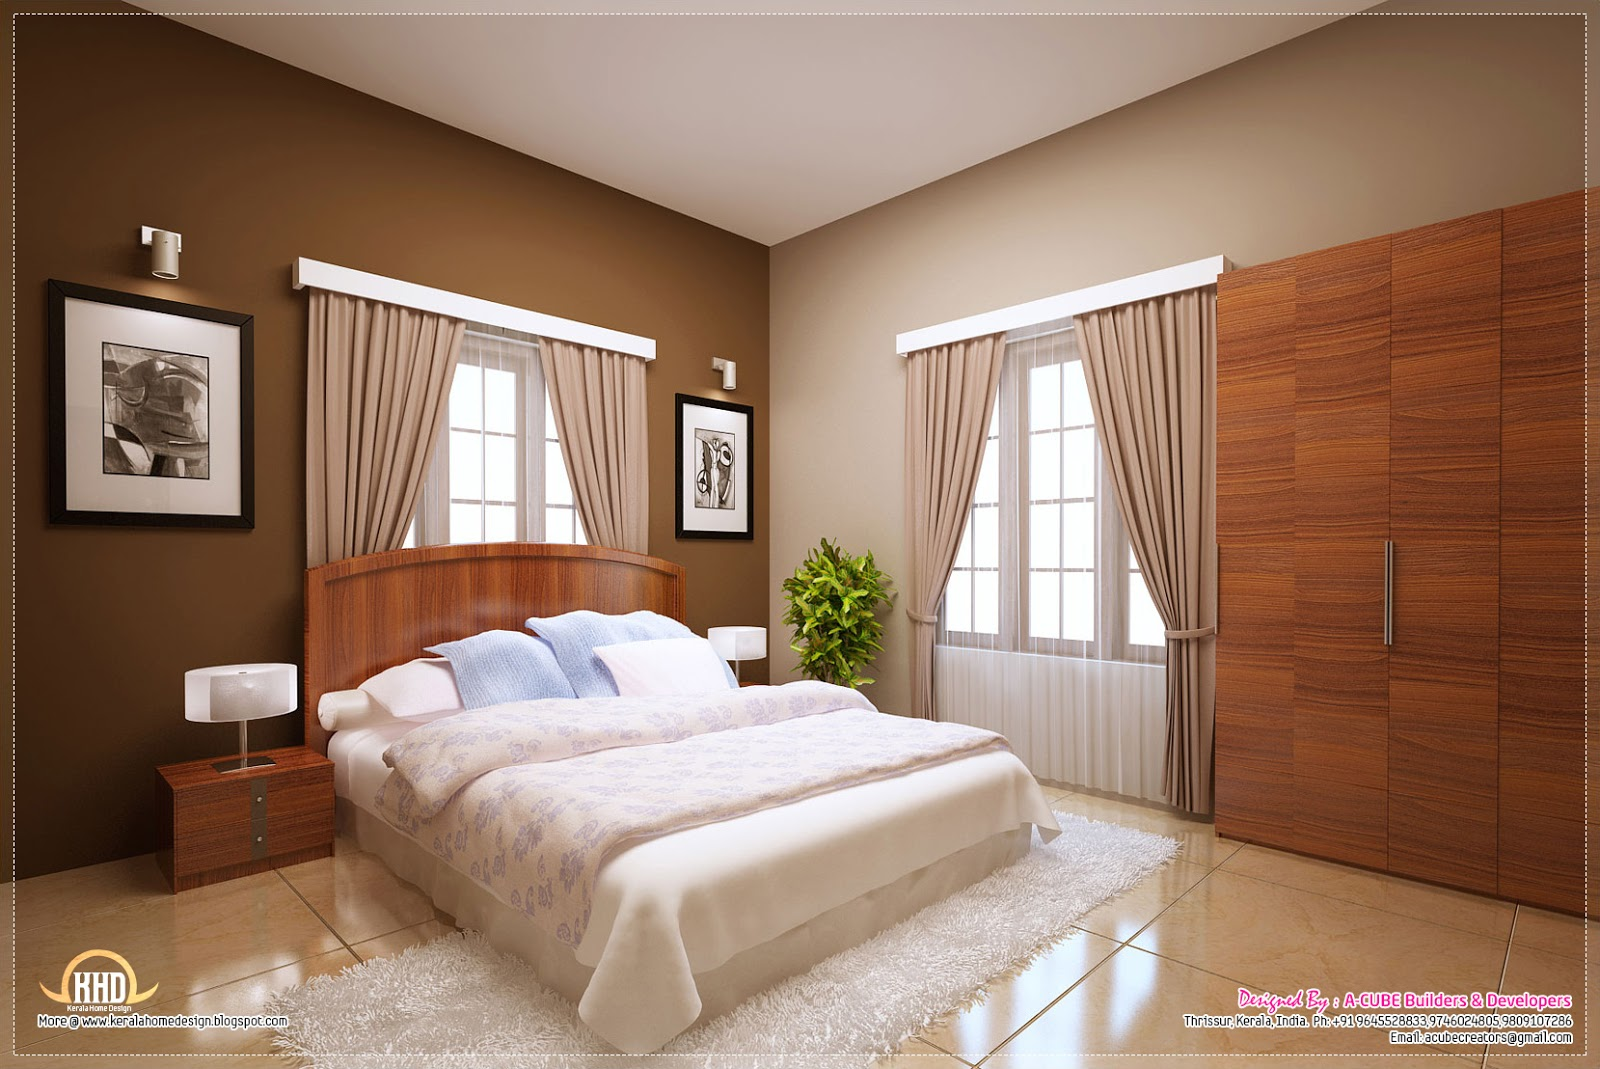 Awesome interior decoration ideas kerala home design and for Simple indian bedroom interior design ideas